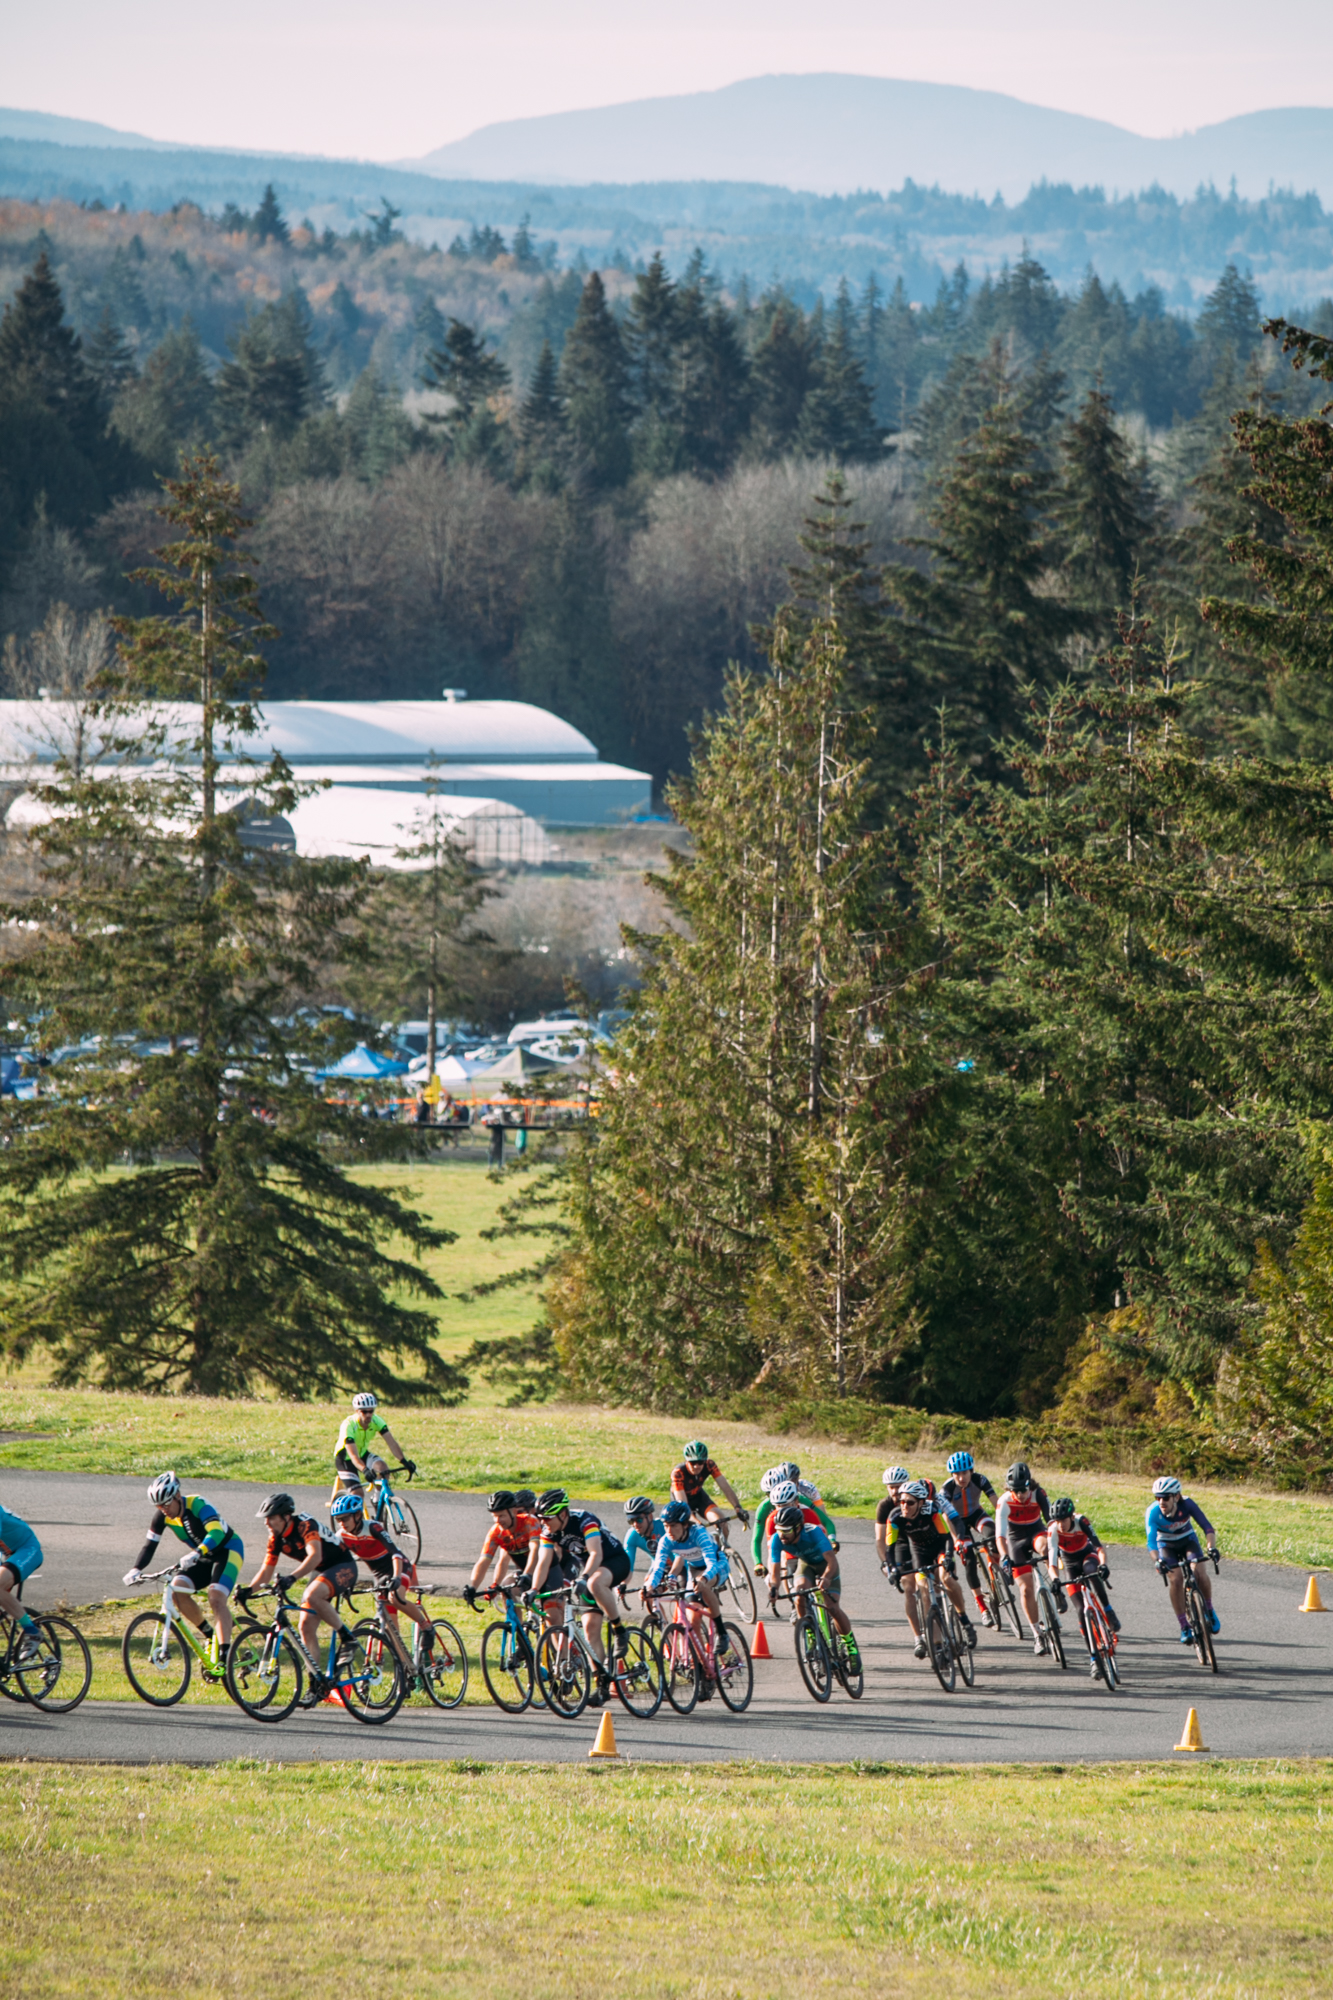 Cyclocross18_CCCX_RainierHS-21-mettlecycling.jpg